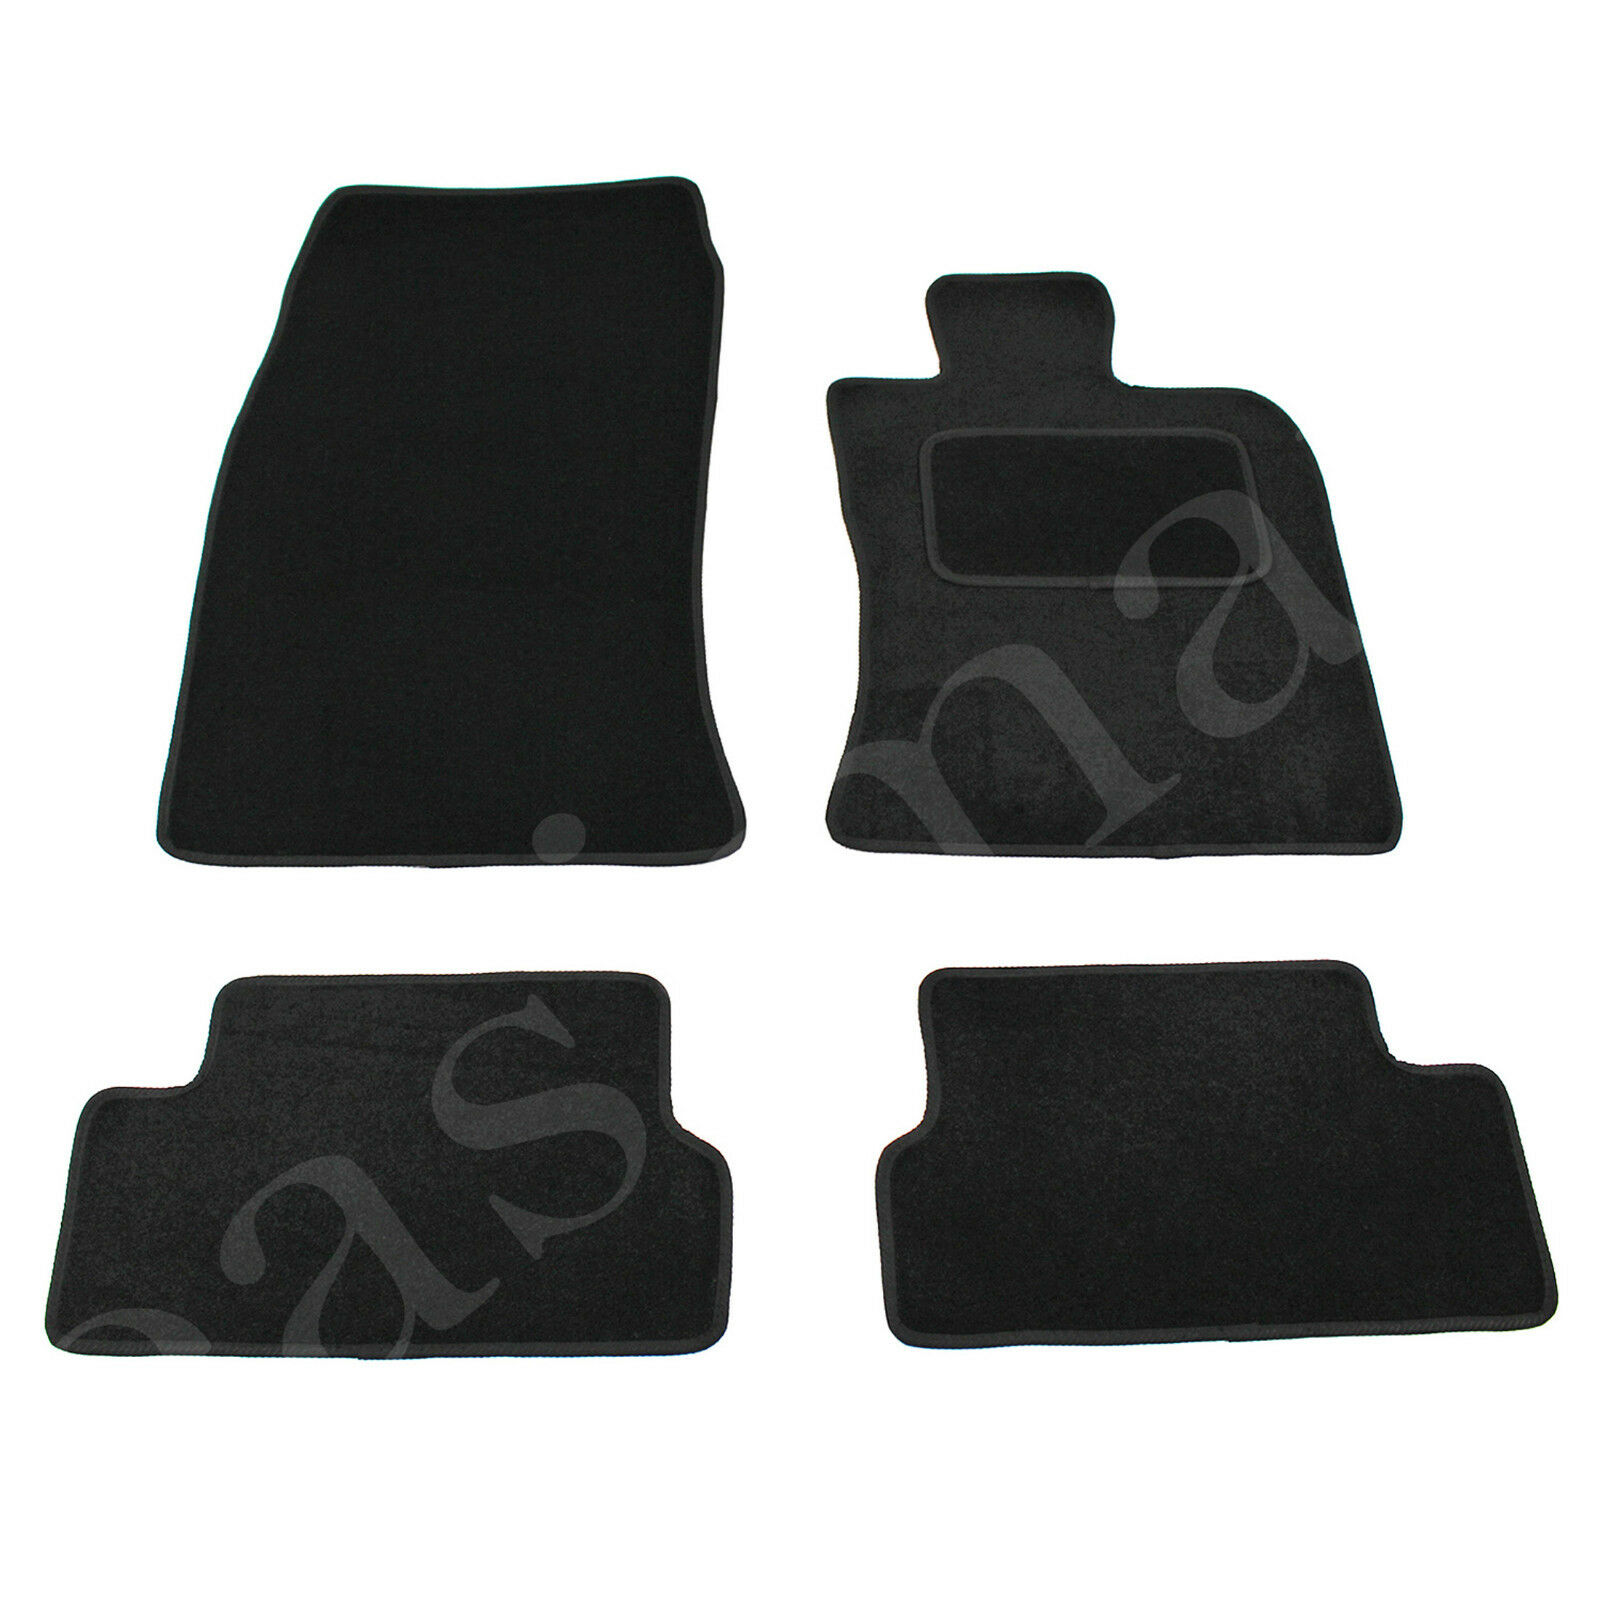 Car Parts - BMW Mini One Cooper Mk 2 Tailored Carpet Car Mats 2007-2013 Black 4pc Floor Set